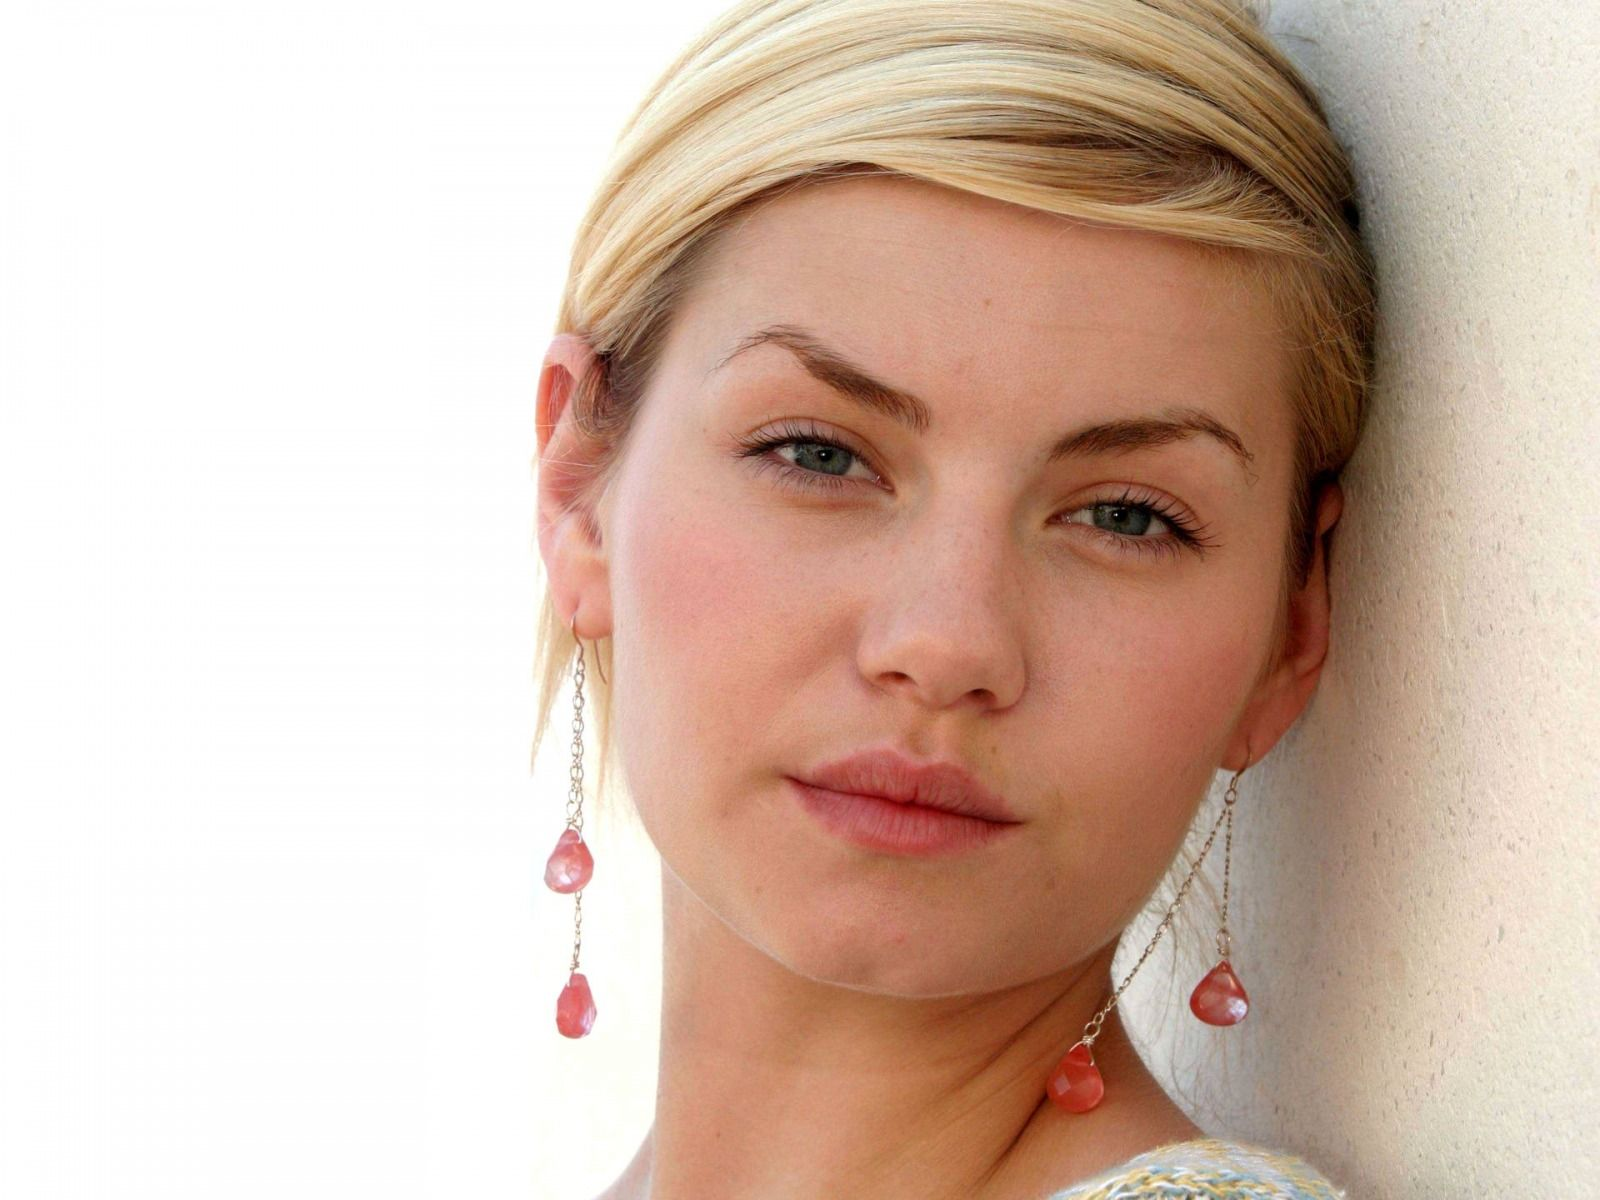 Elisha Cuthbert Wide wallpapers